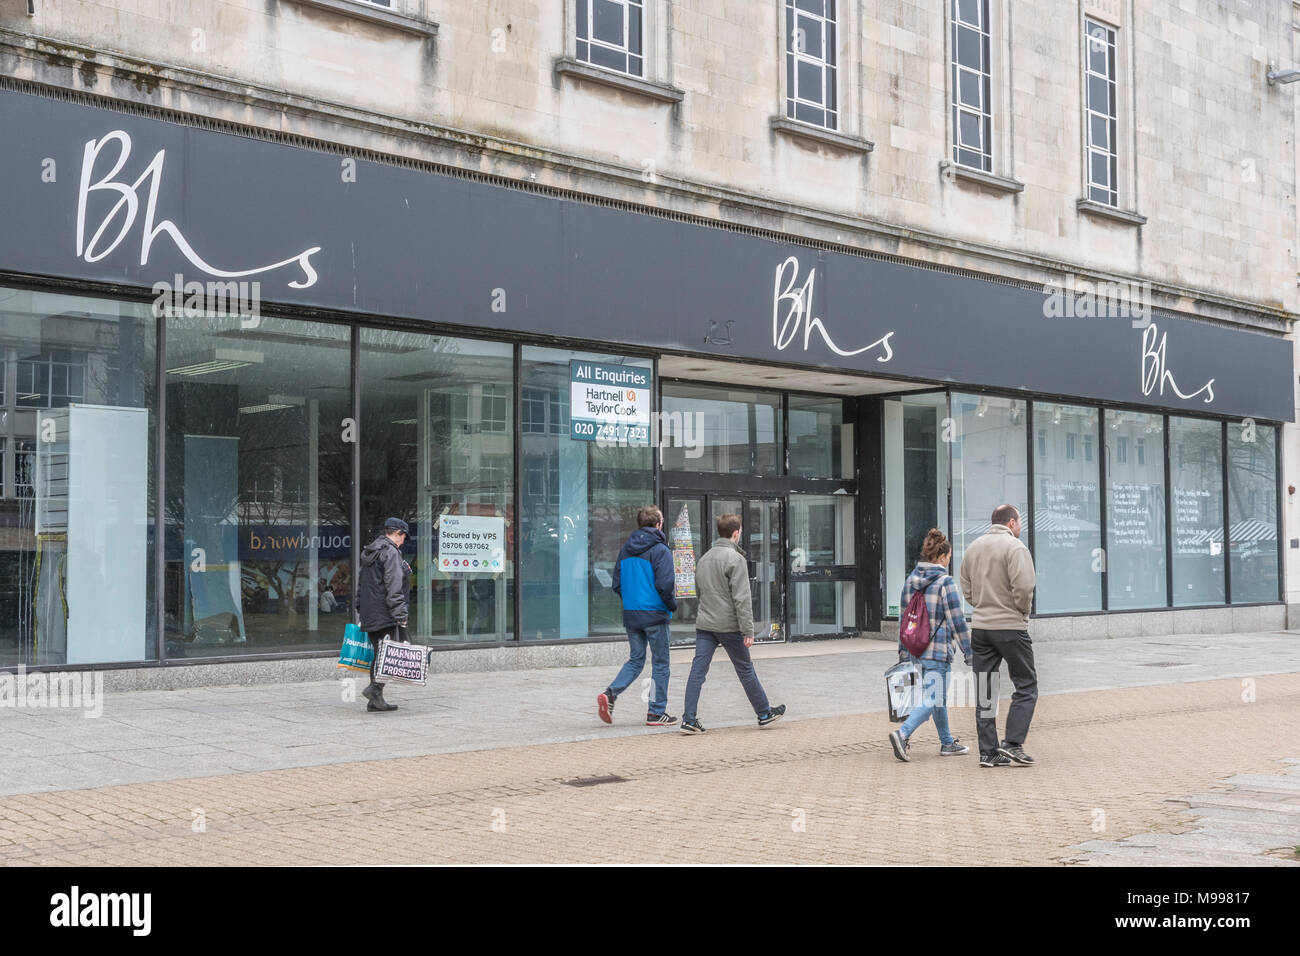 Empty BHS store / shop in Plymouth, Devon, after it closed it's doors and went into liquidation. Metaphor for struggling high street retailers. - Stock Image